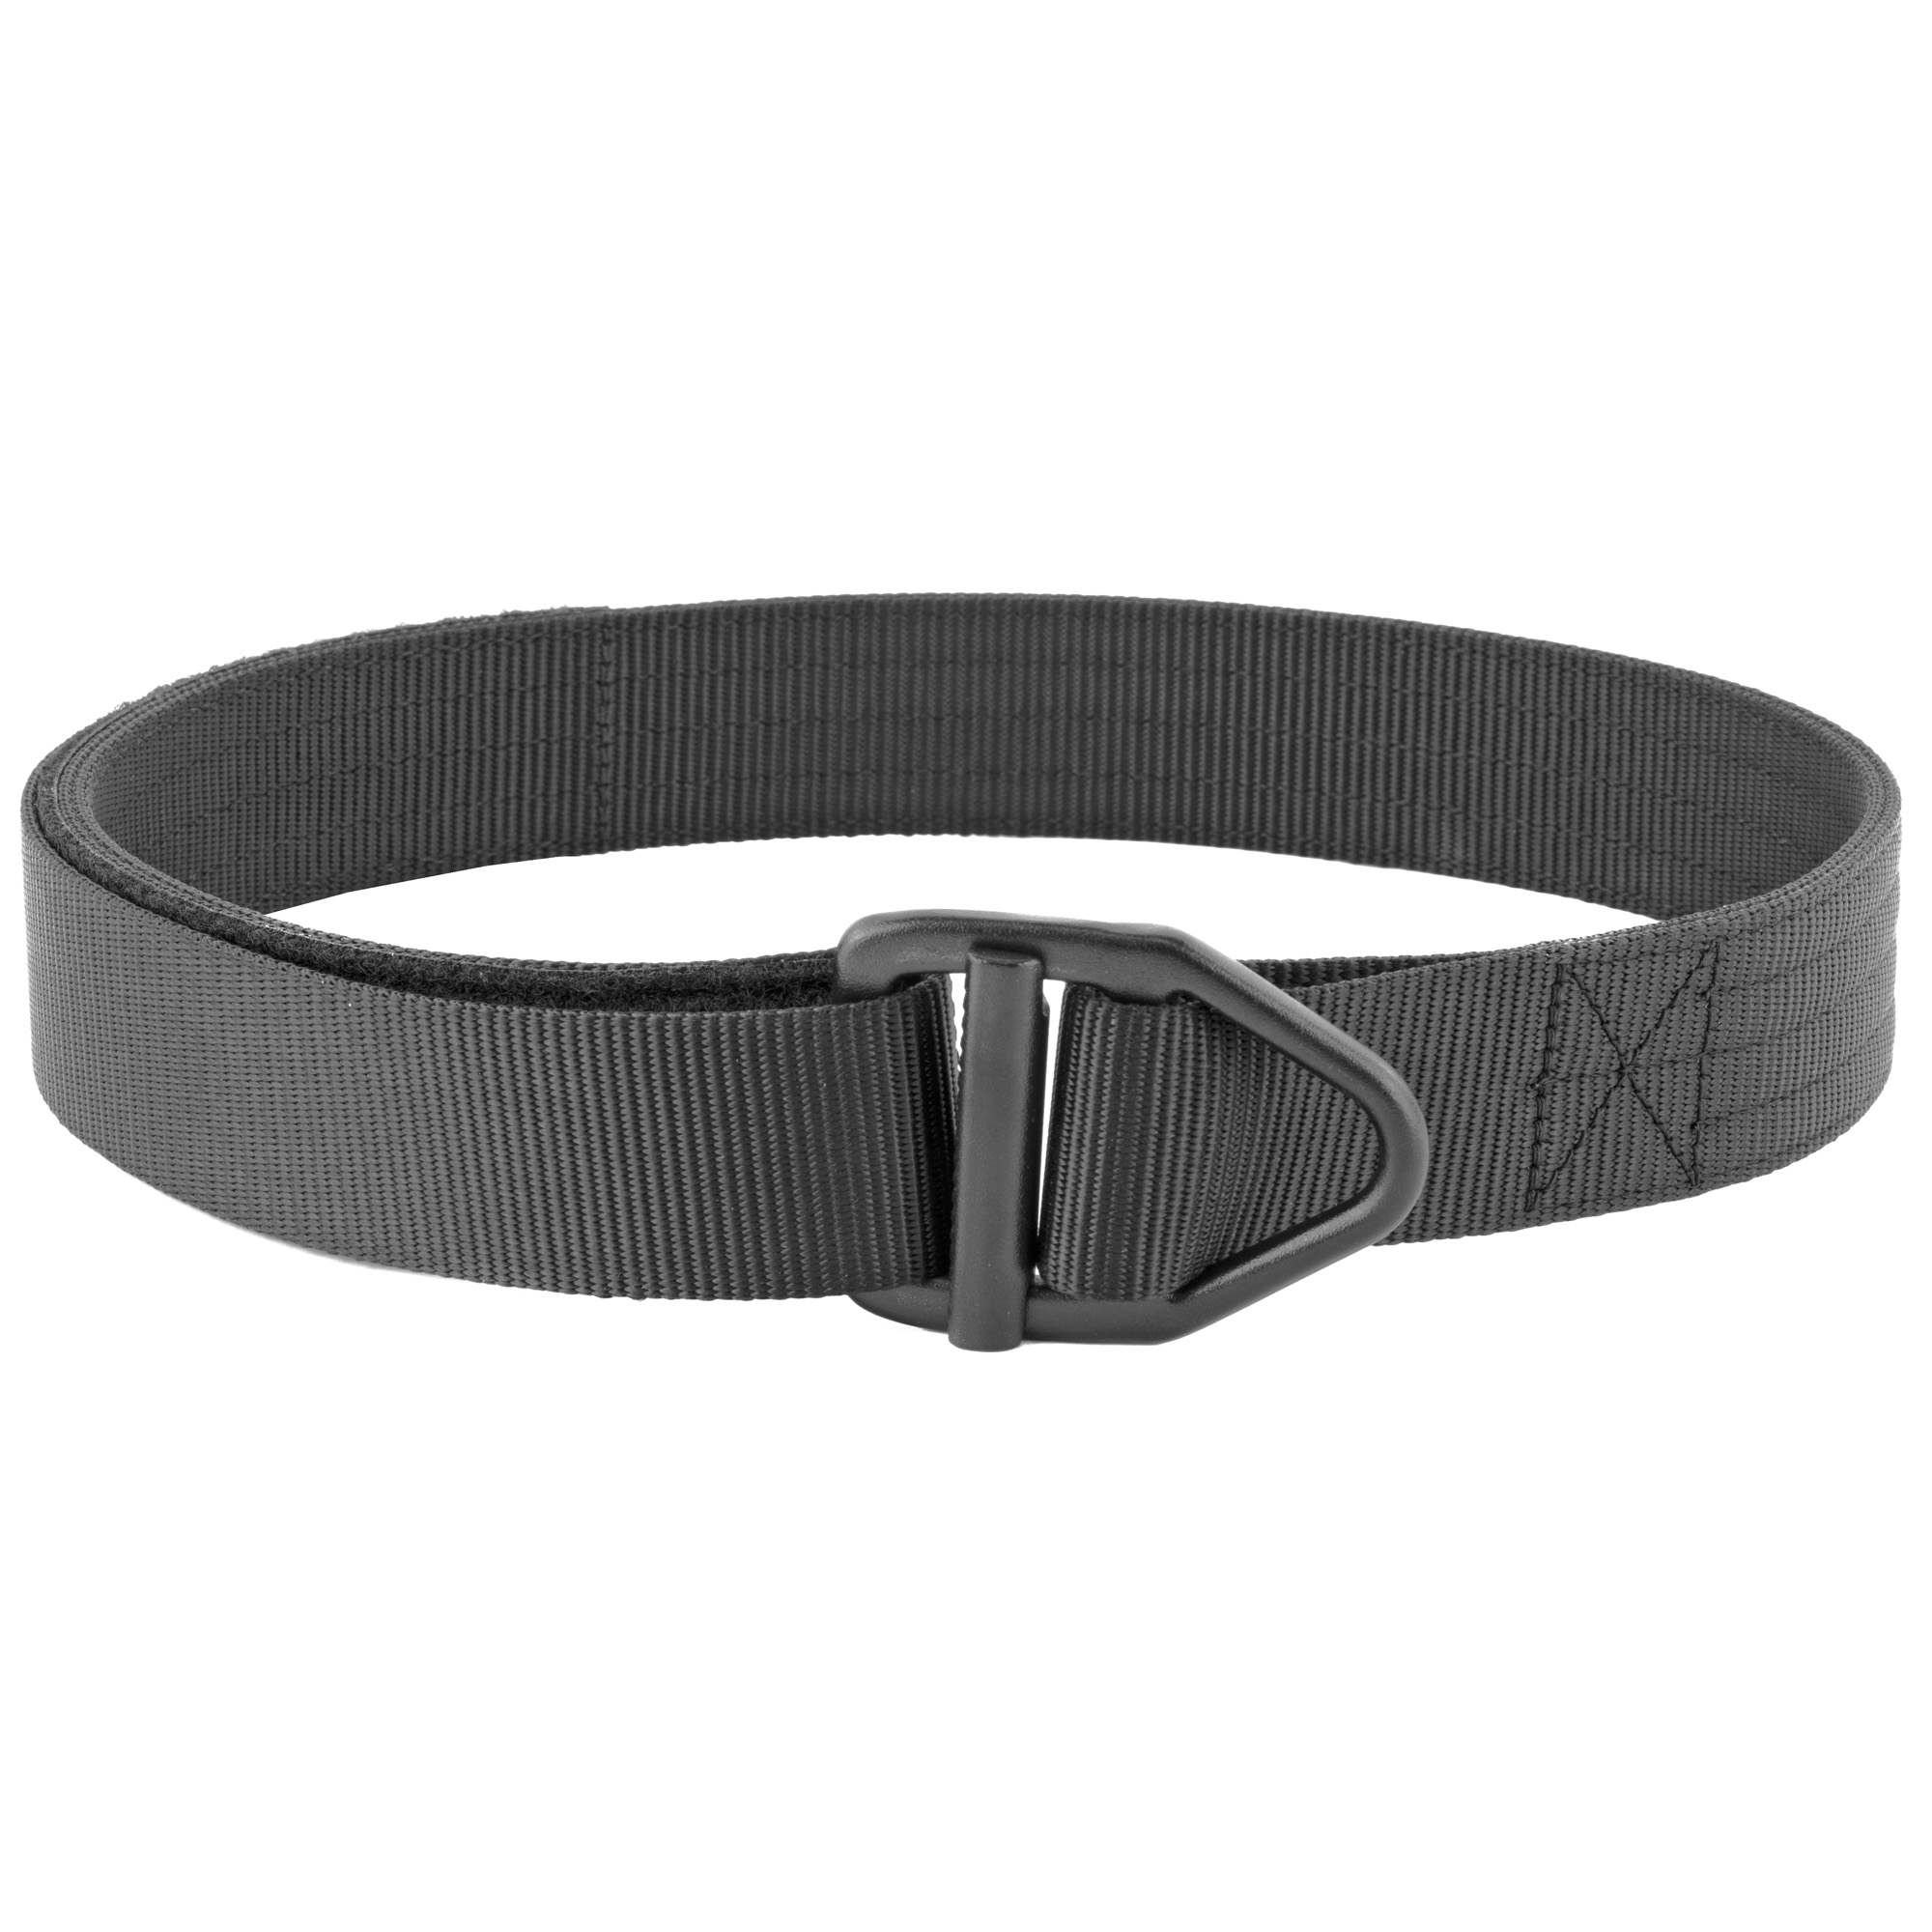 "Galco Instructor Belt 1 1/2"" Blk Lg"